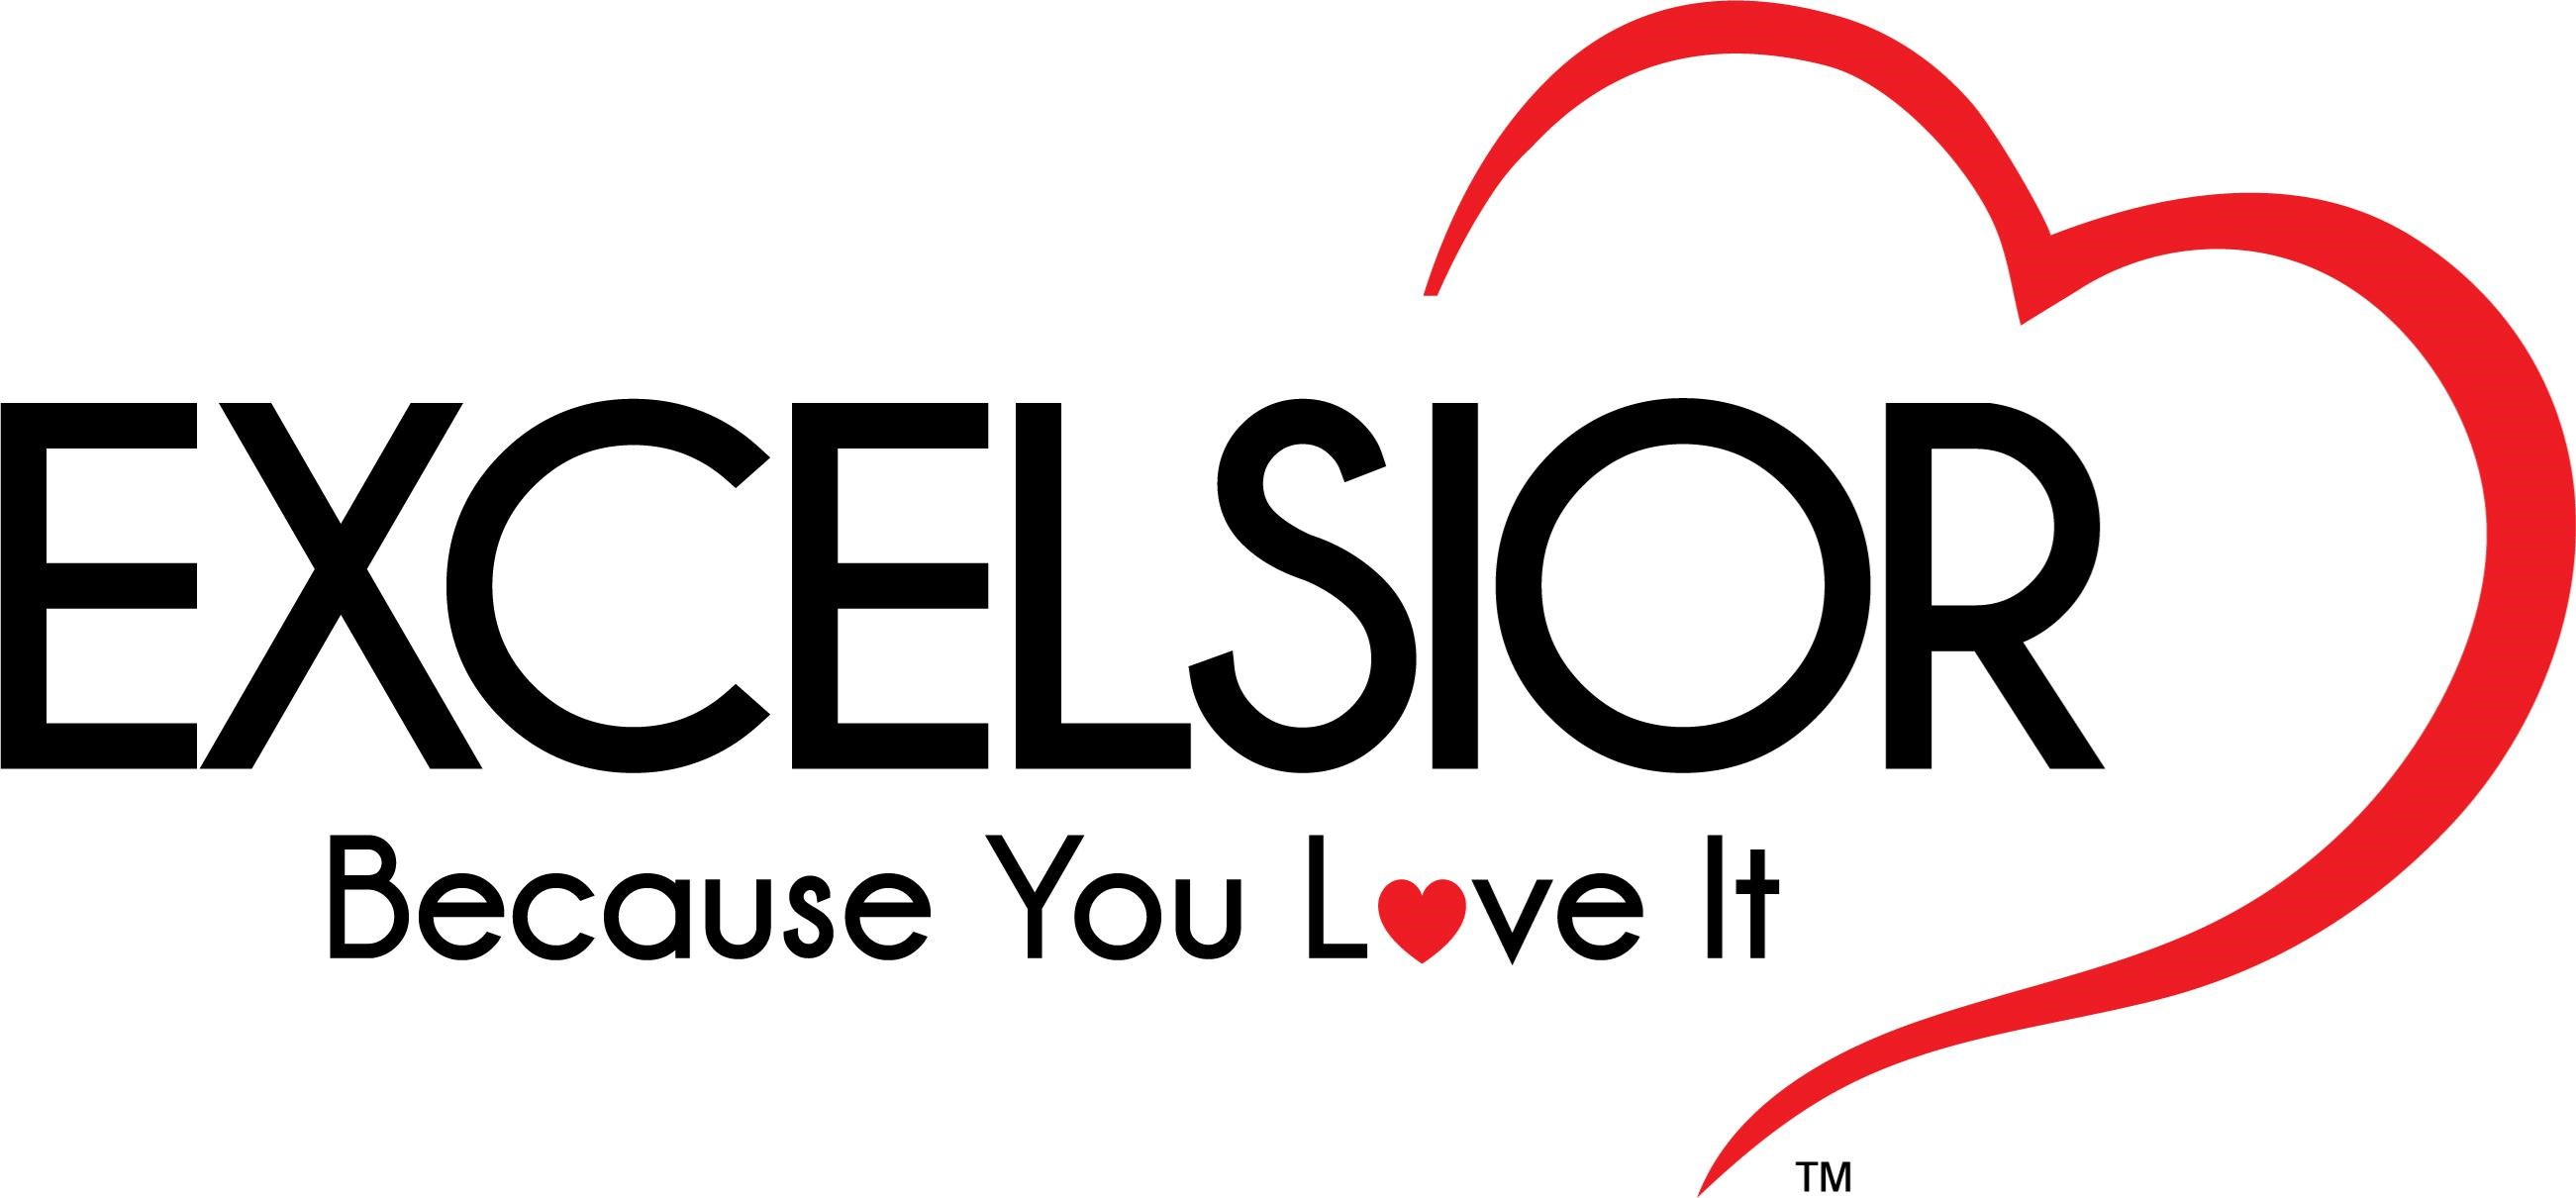 Stationary Furniture Stationary Furniture Protection $12501-$1500 by Excelsior at C. S. Wo & Sons Hawaii